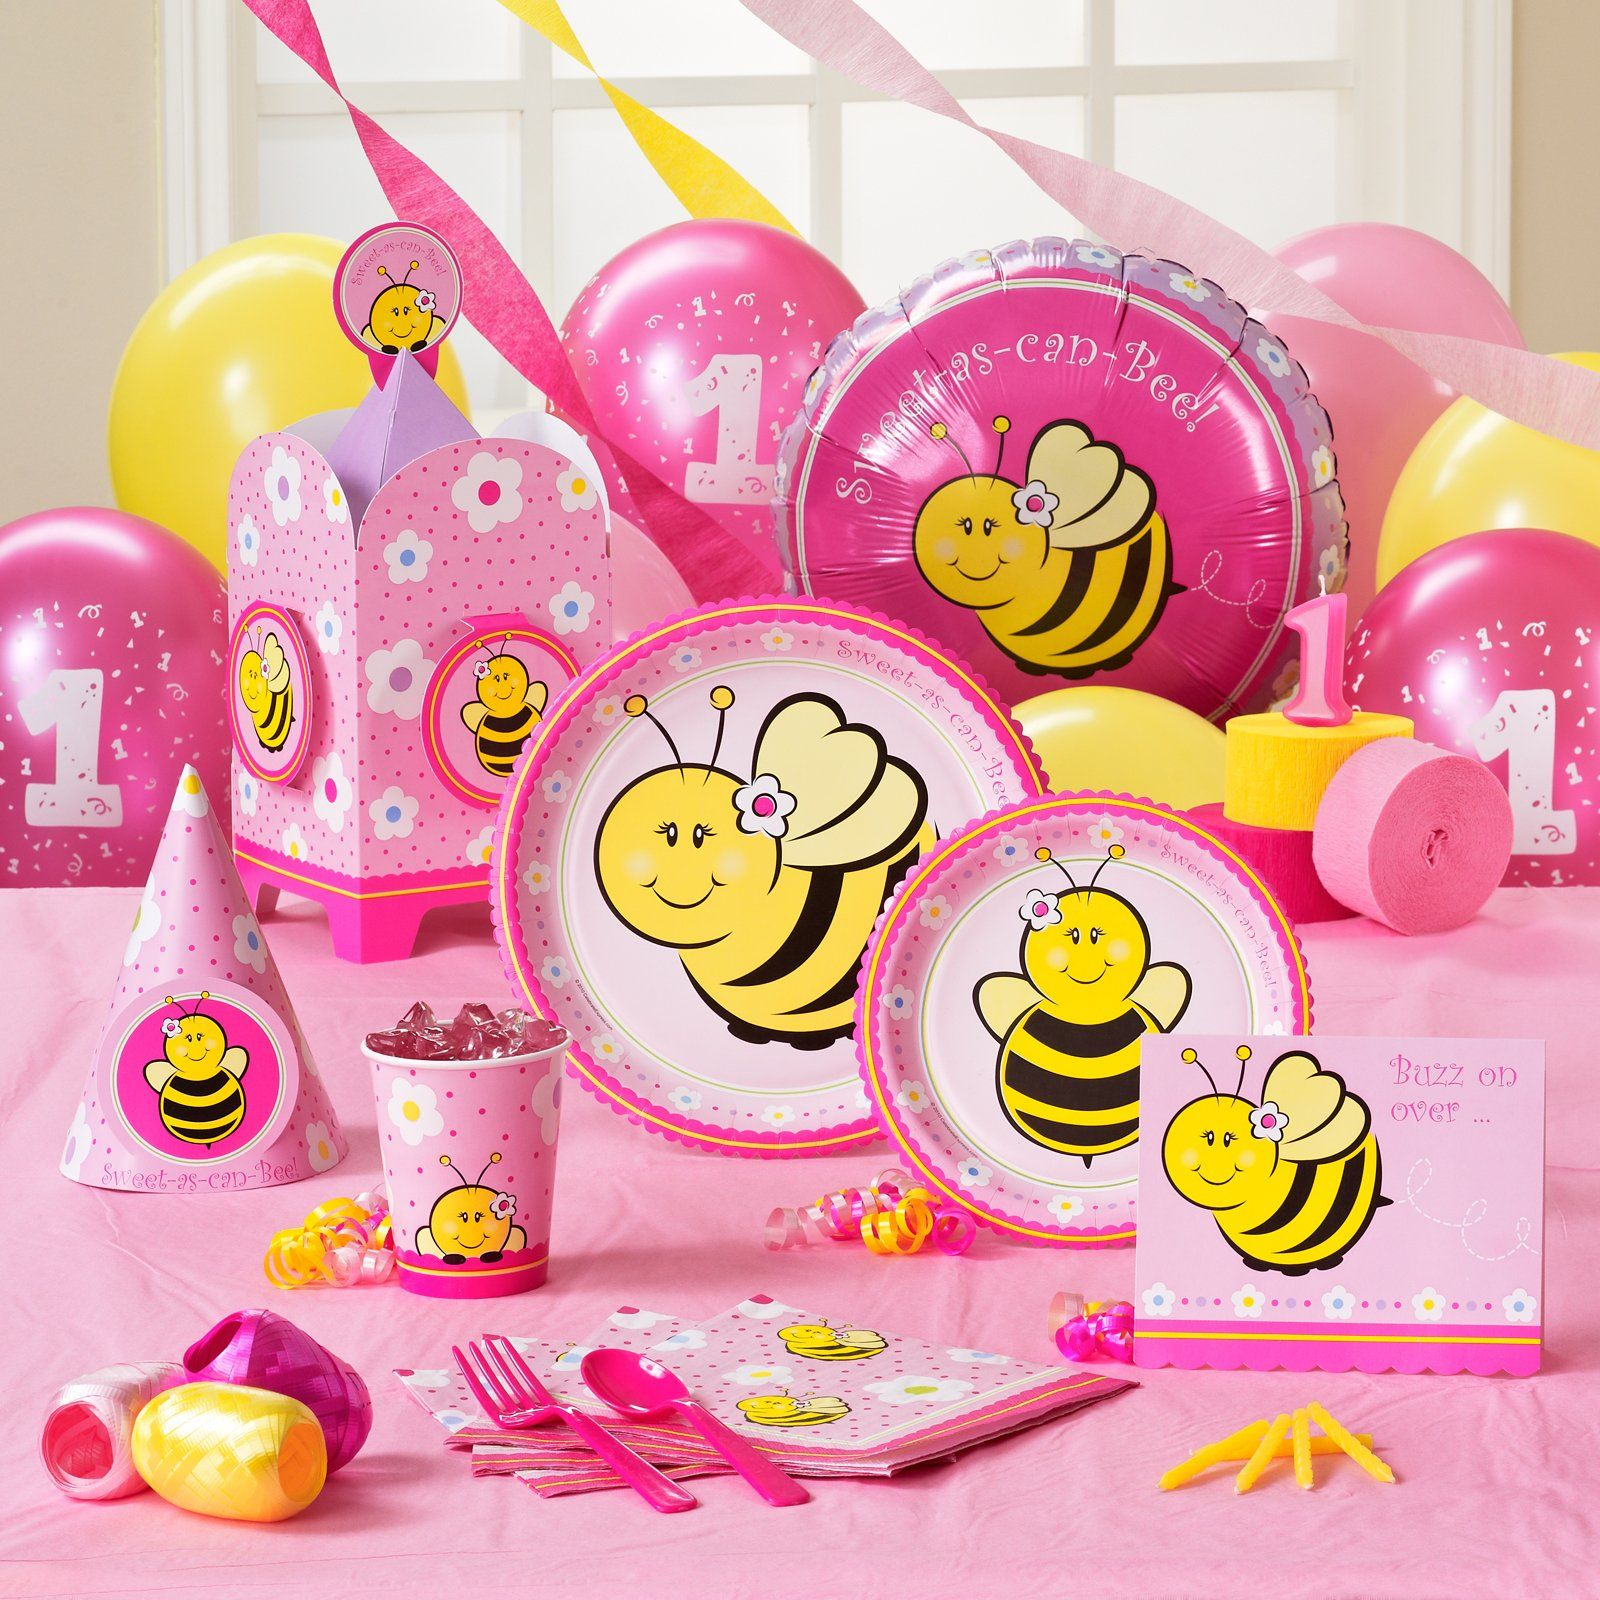 SweetAsCanBee 1st Birthday Party Supplies Rae Lynn Pinterest